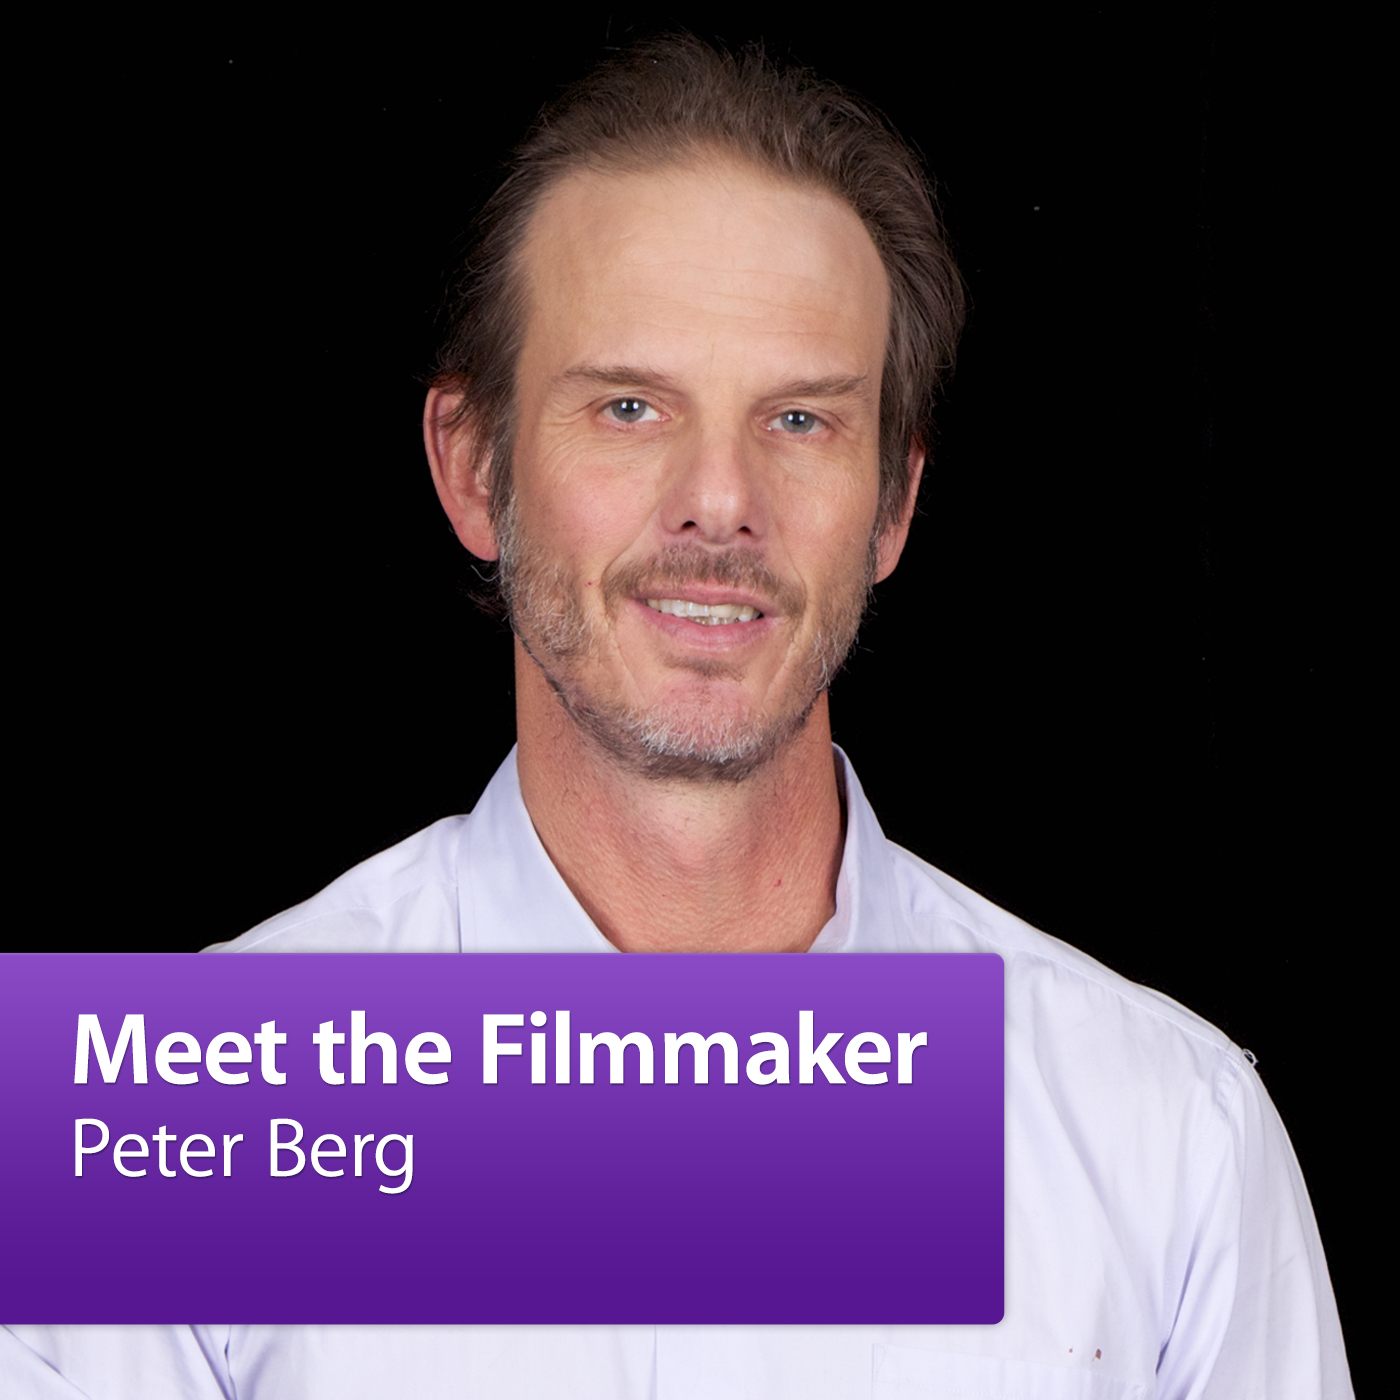 Peter Berg: Meet the Filmmaker